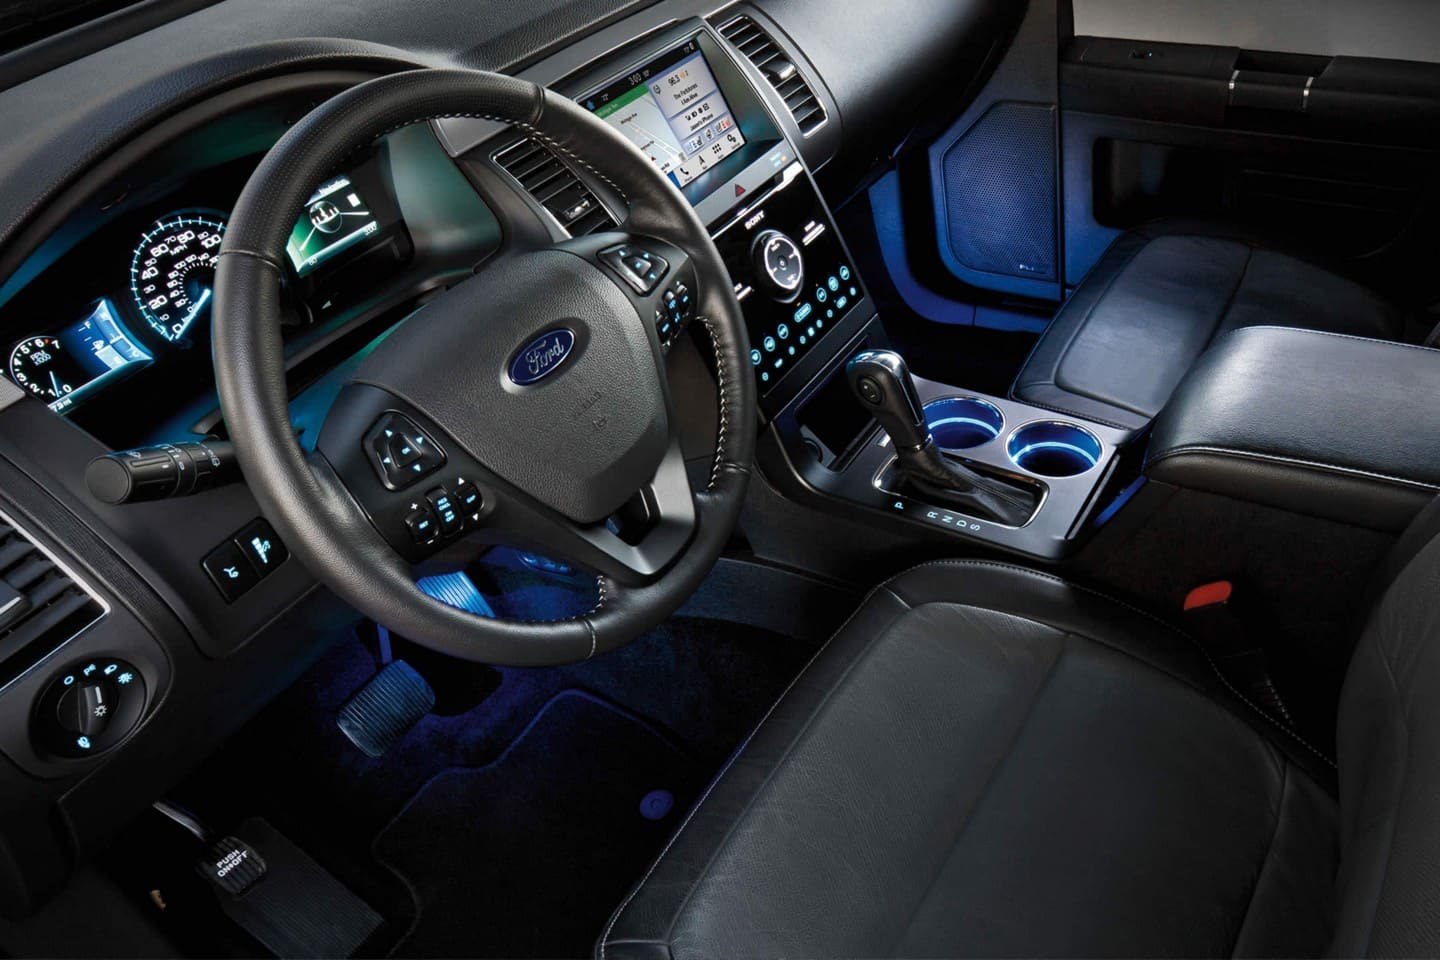 Inviting Interior of the 2019 Ford Flex